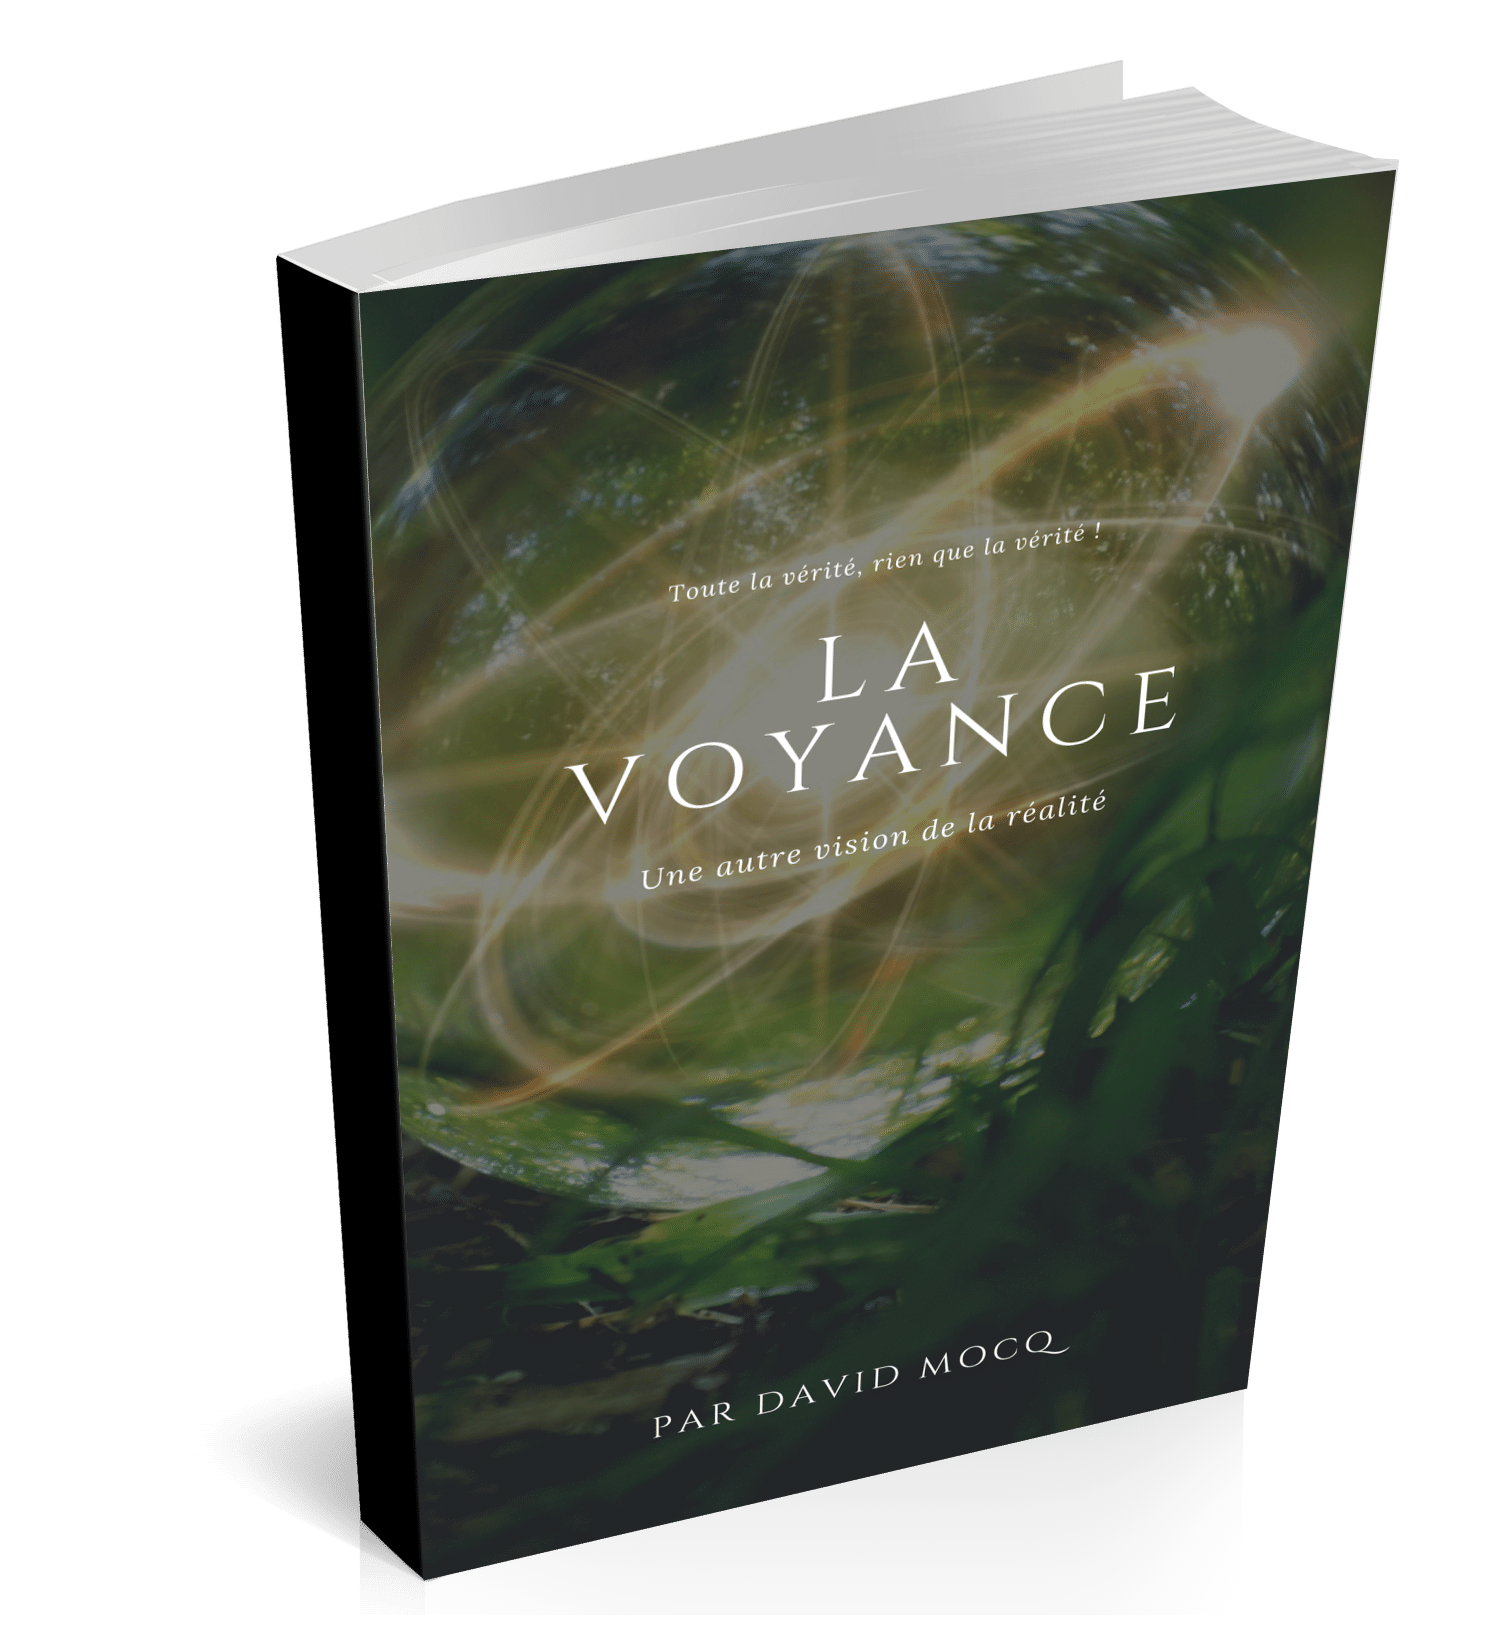 Ebook La Voyance par David Mocq